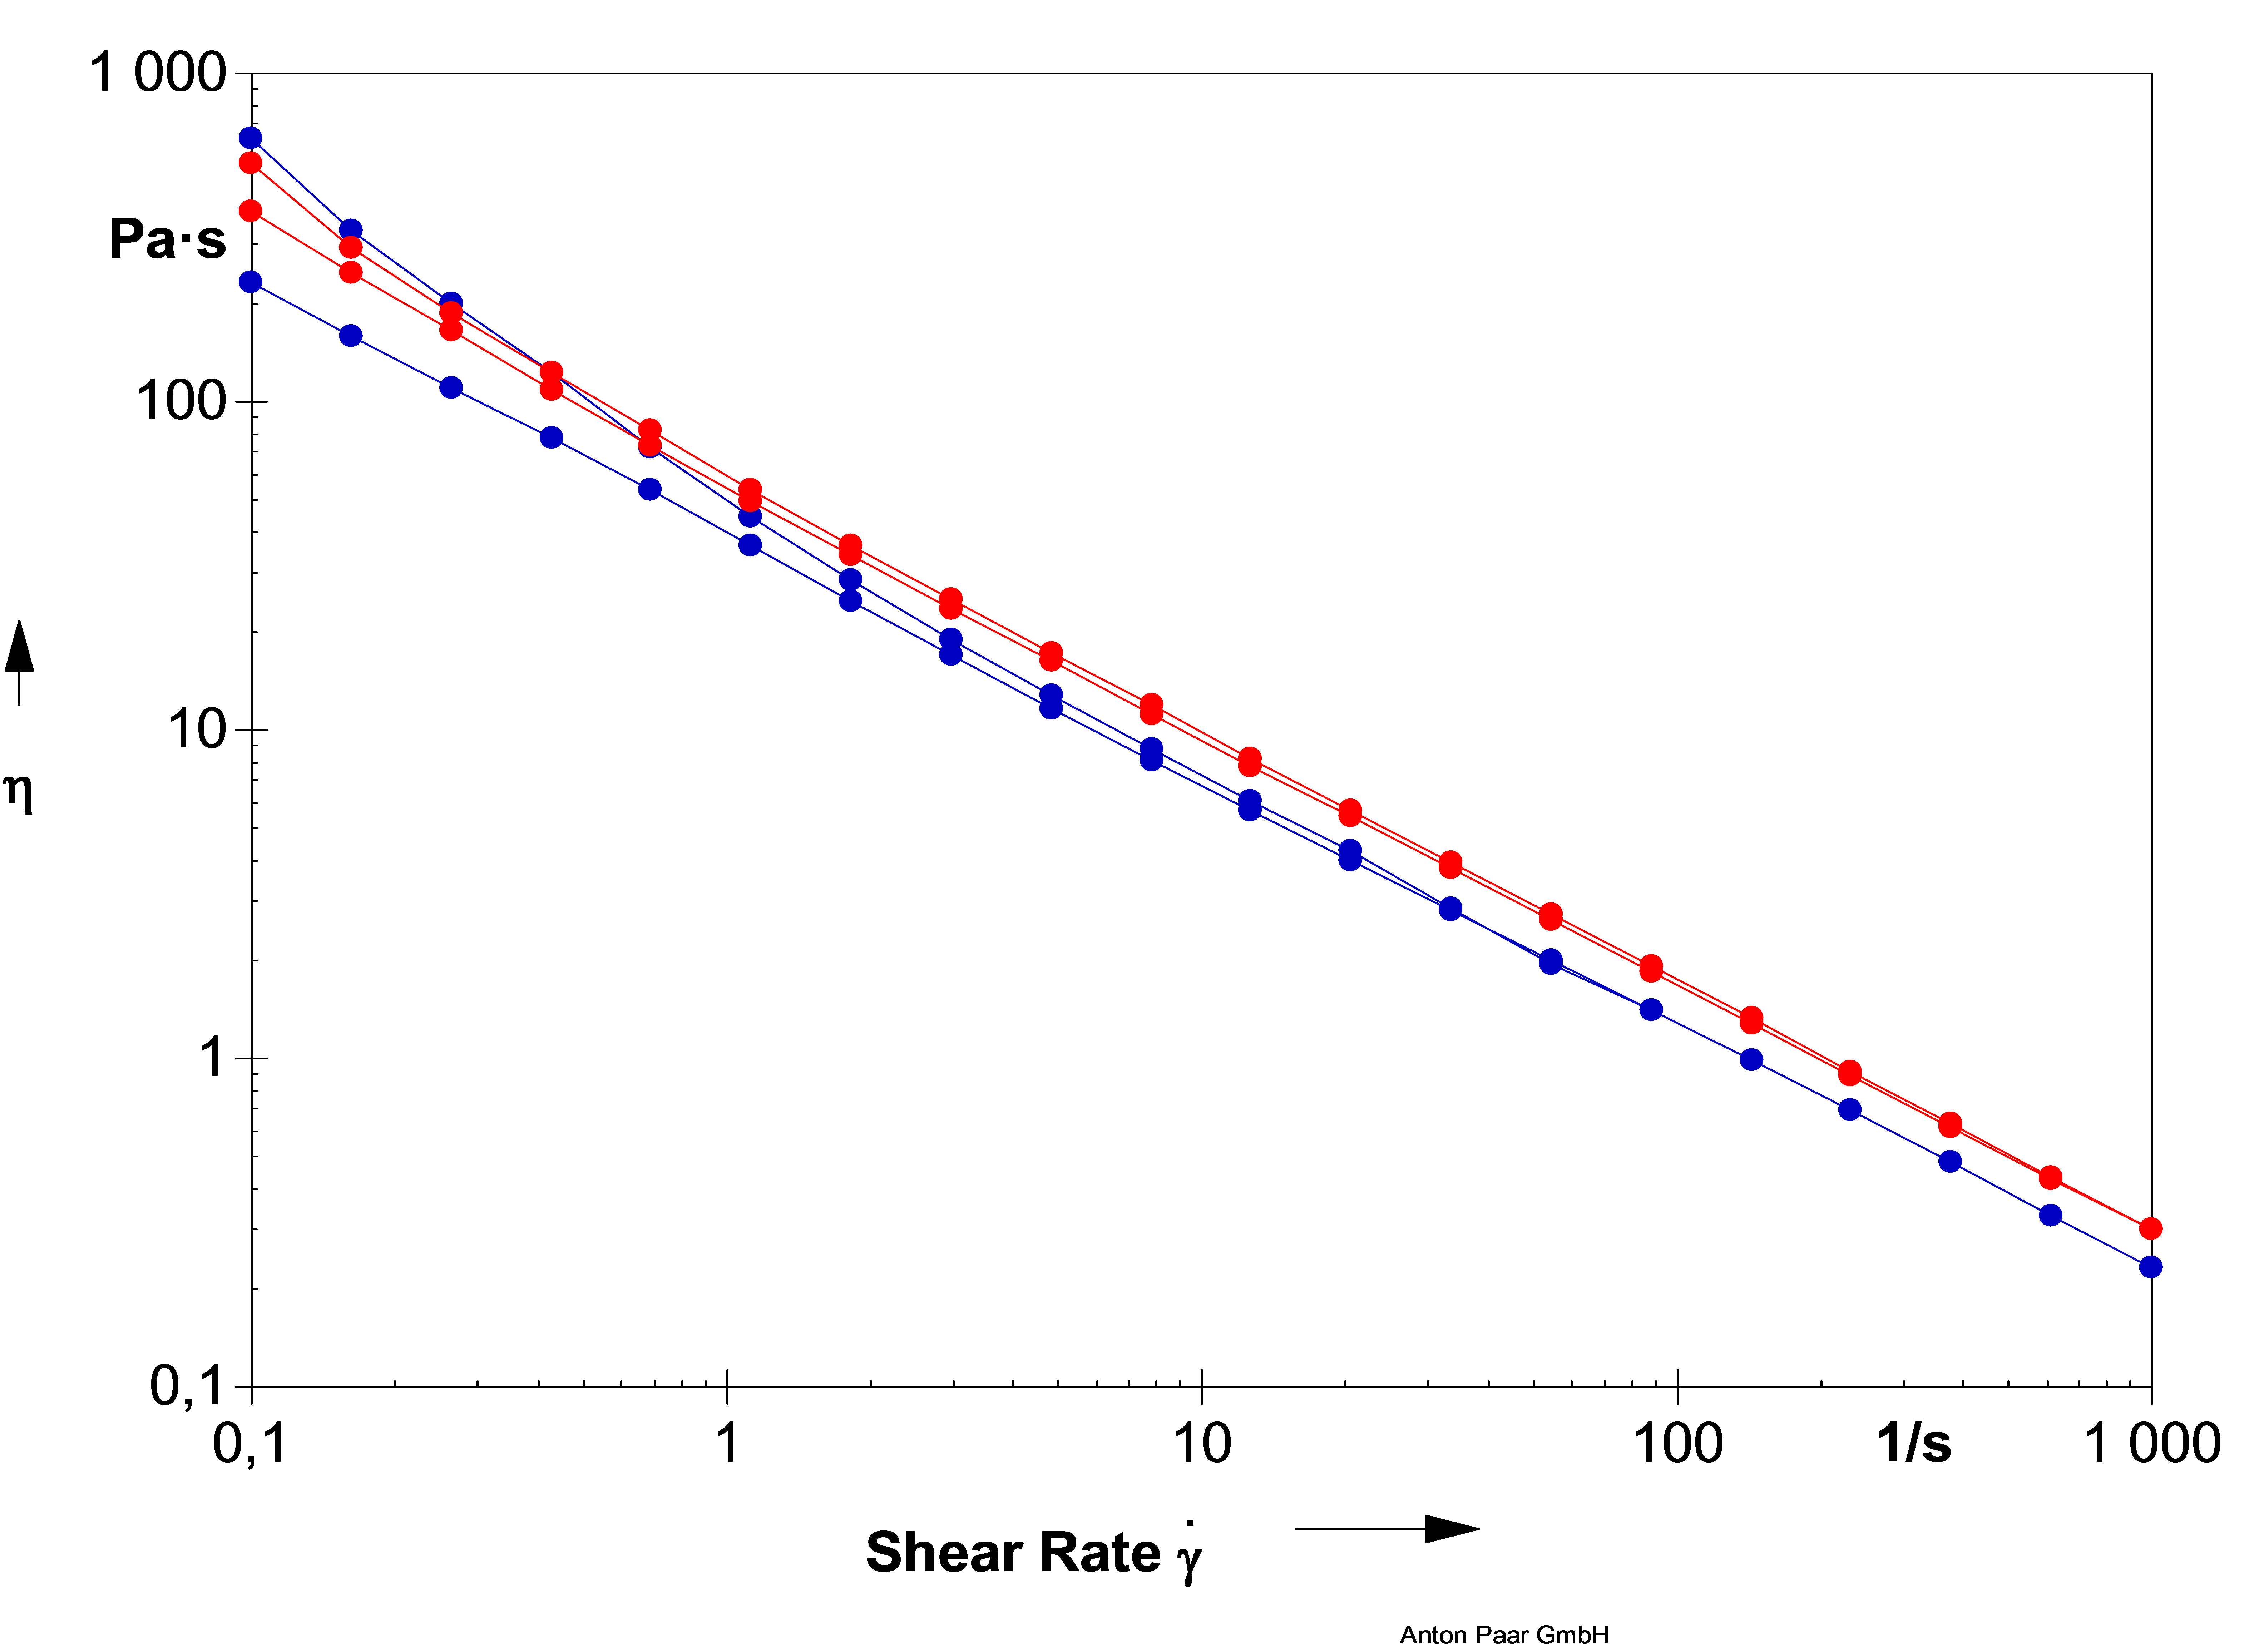 Share_curve_Exilva_in_ethanol_and_peg.png